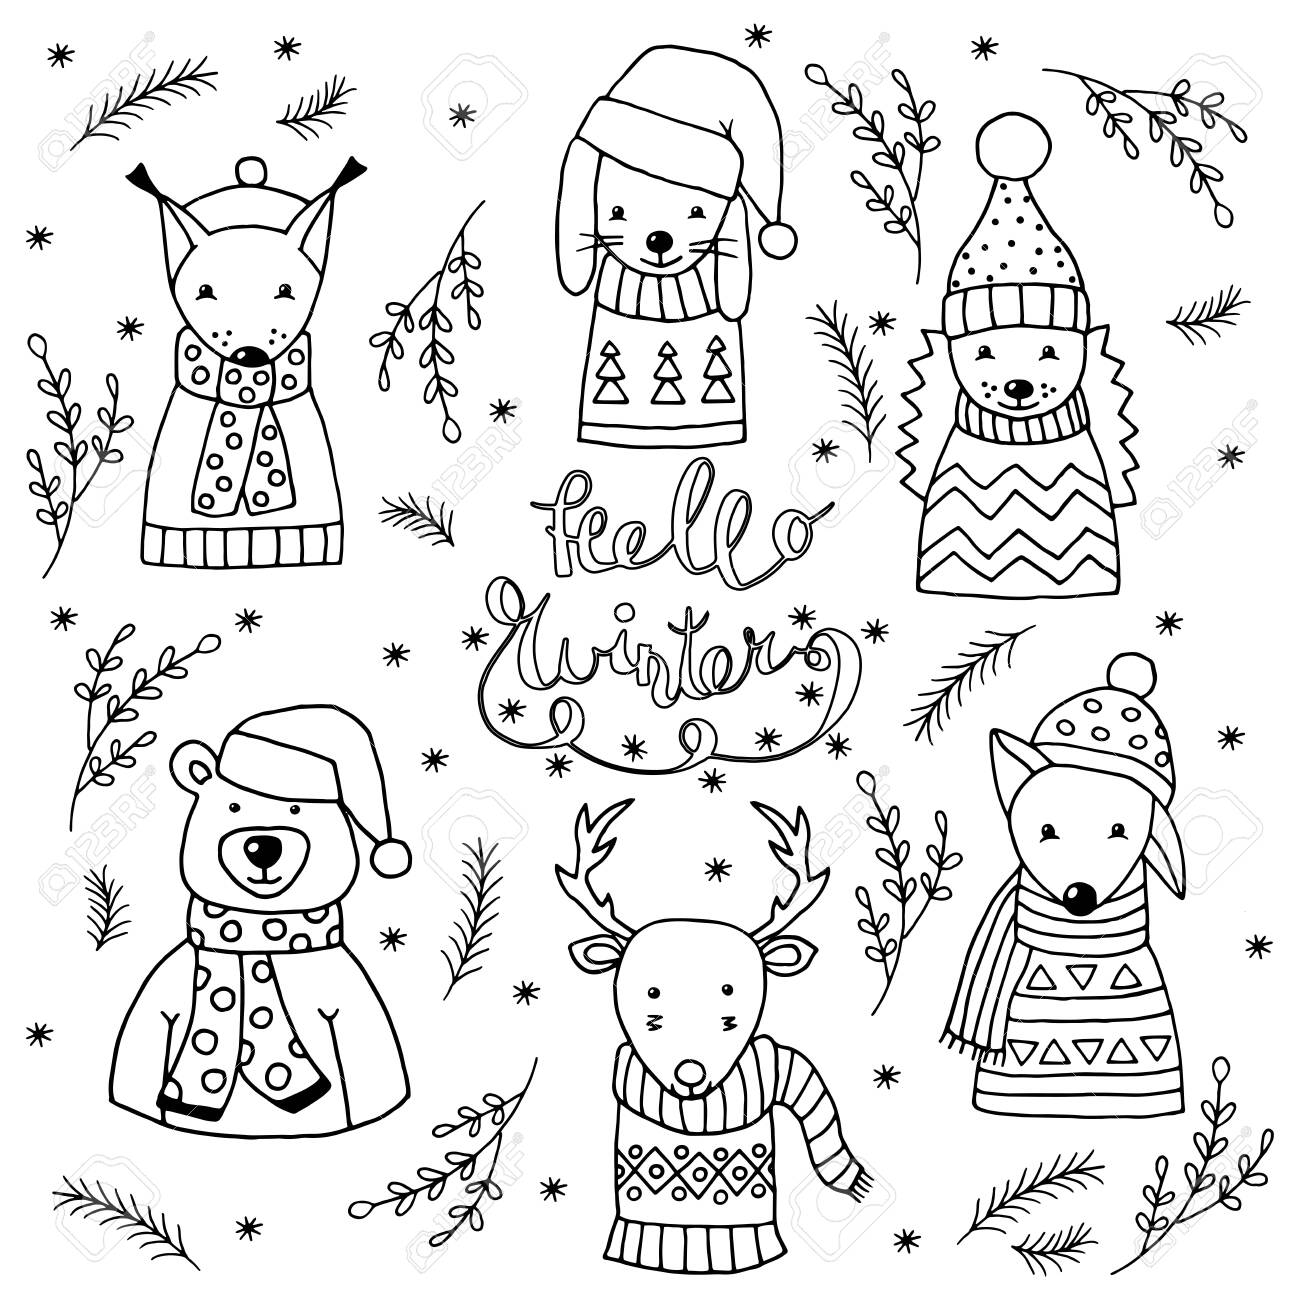 Coloring Page With Winter Set Of Cute Christmas Animals In Scandinavian Royalty Free Cliparts Vectors And Stock Illustration Image 136665301